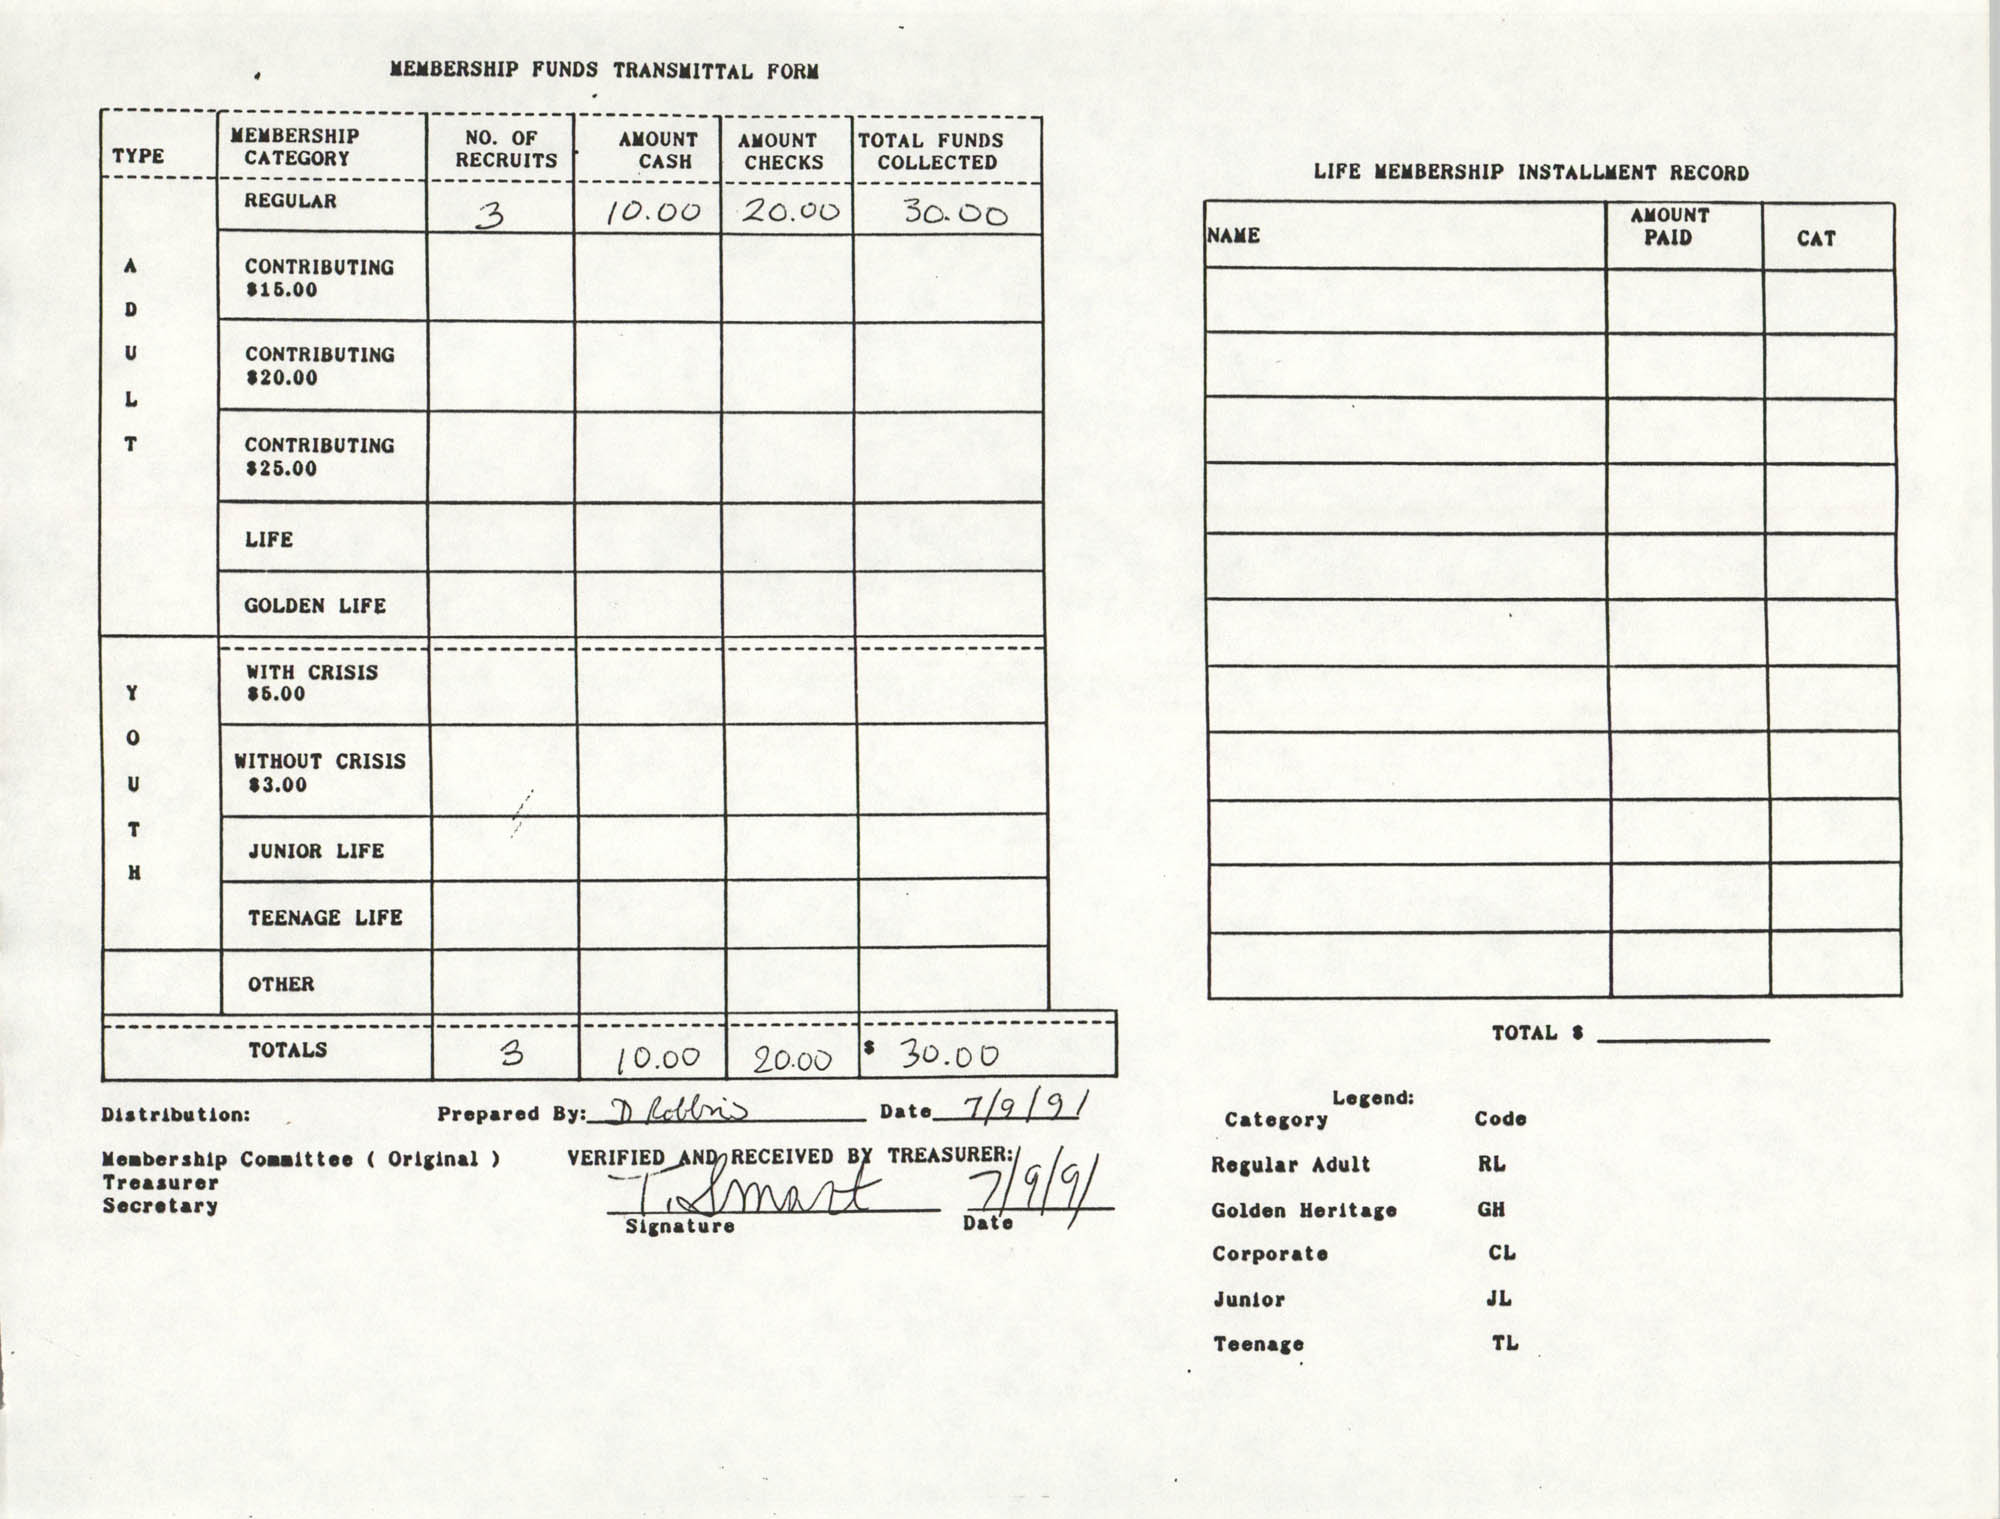 Charleston Branch of the NAACP Funds Transmittal Forms, July 1991, Page 3